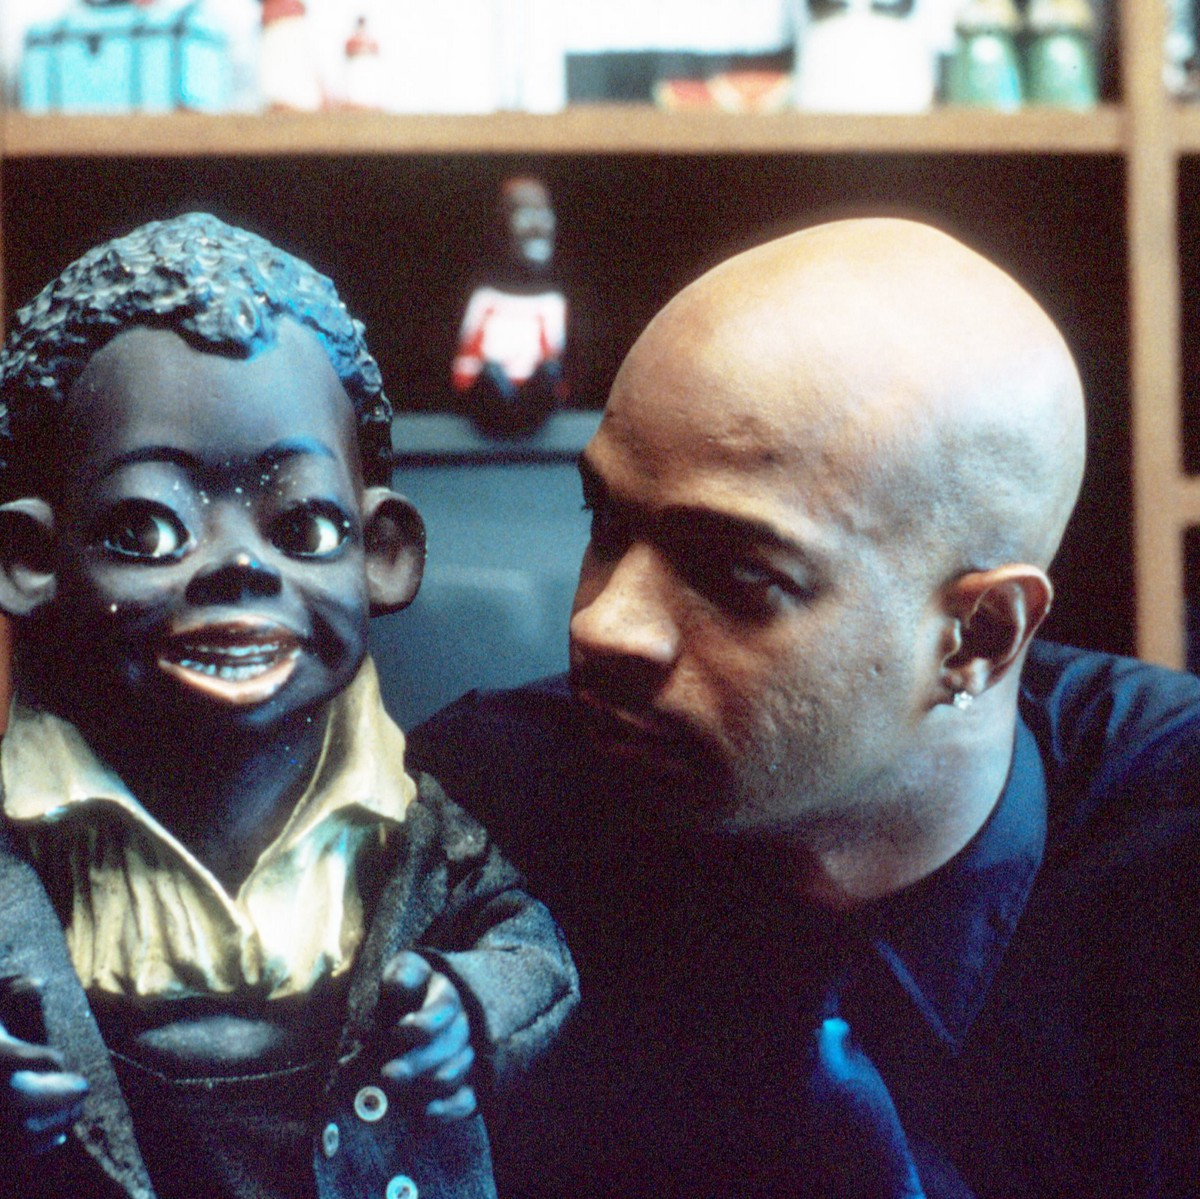 Bamboozled 20 Years Later: We All Shortchanged Spike's Classic Film